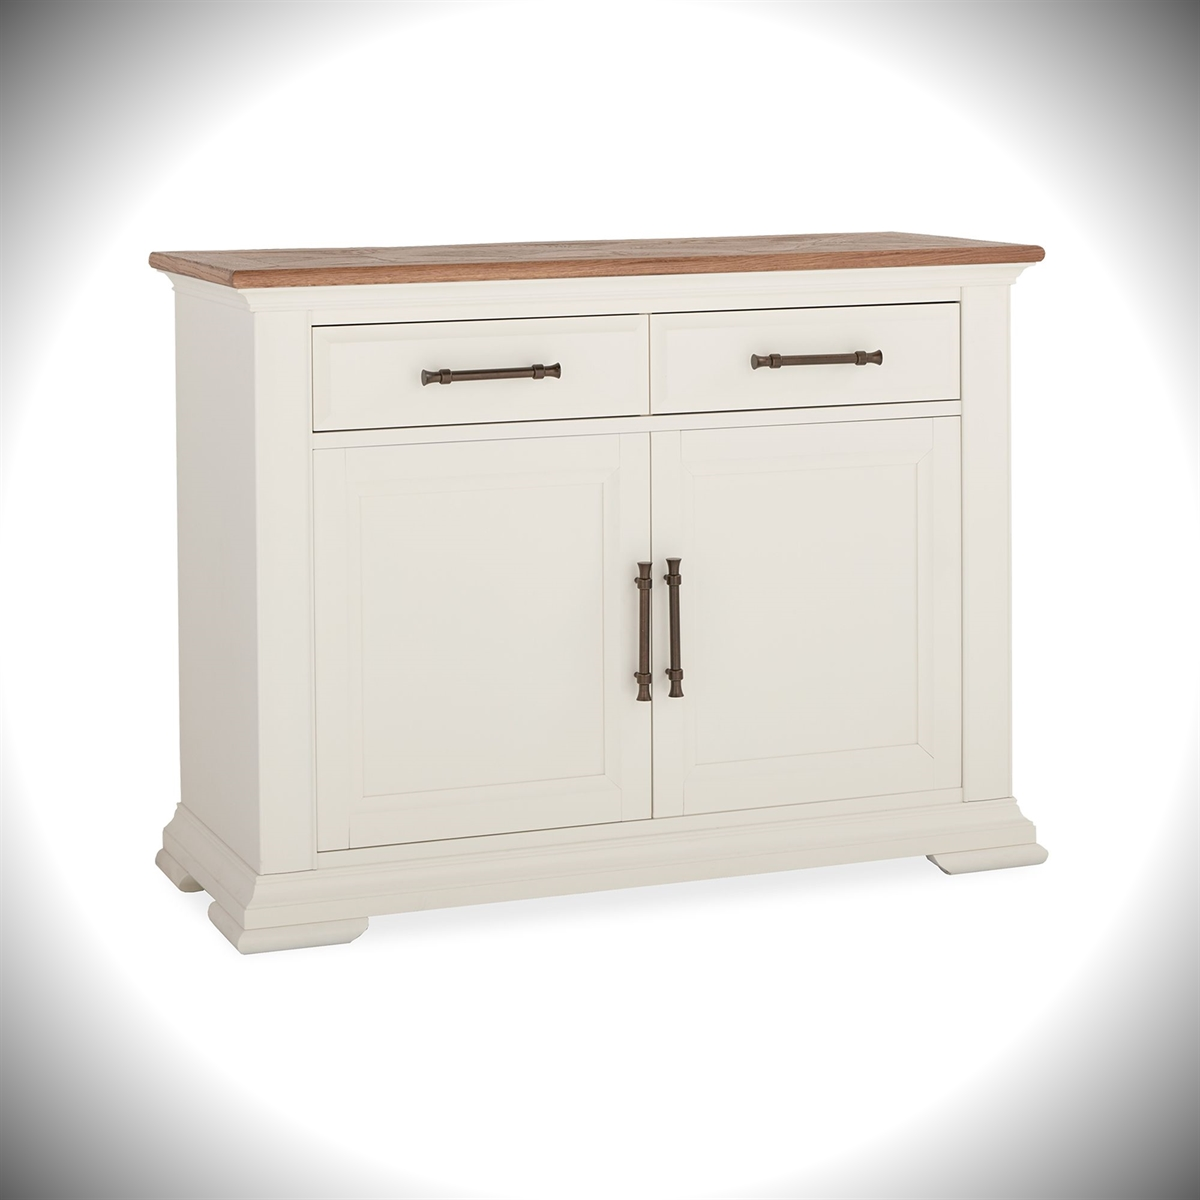 Belgrave Narrow Sideboard - 2 Tone